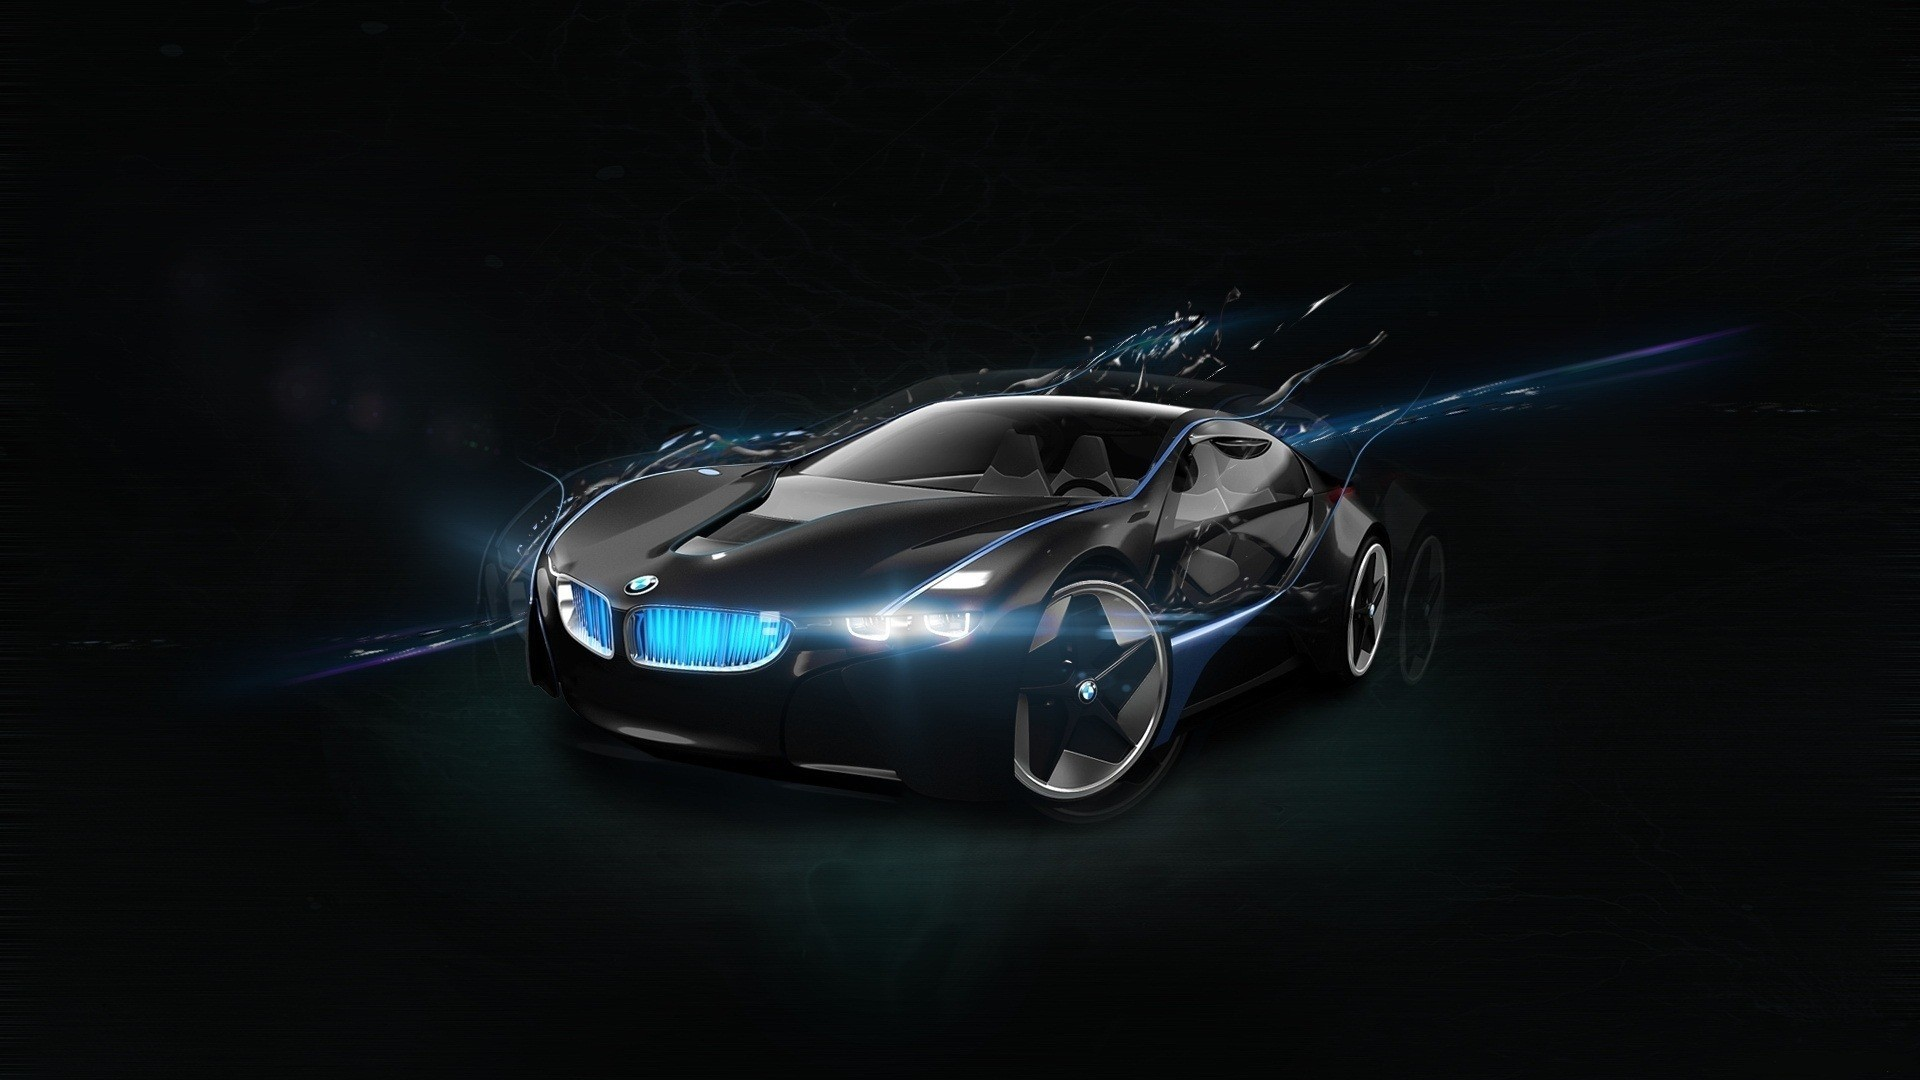 BMW-Vision-Super-Car-Check-out-THESE-Bimmers-http-germancars-everythingaboutgermany-com-BMW-wallpaper-wp3603607